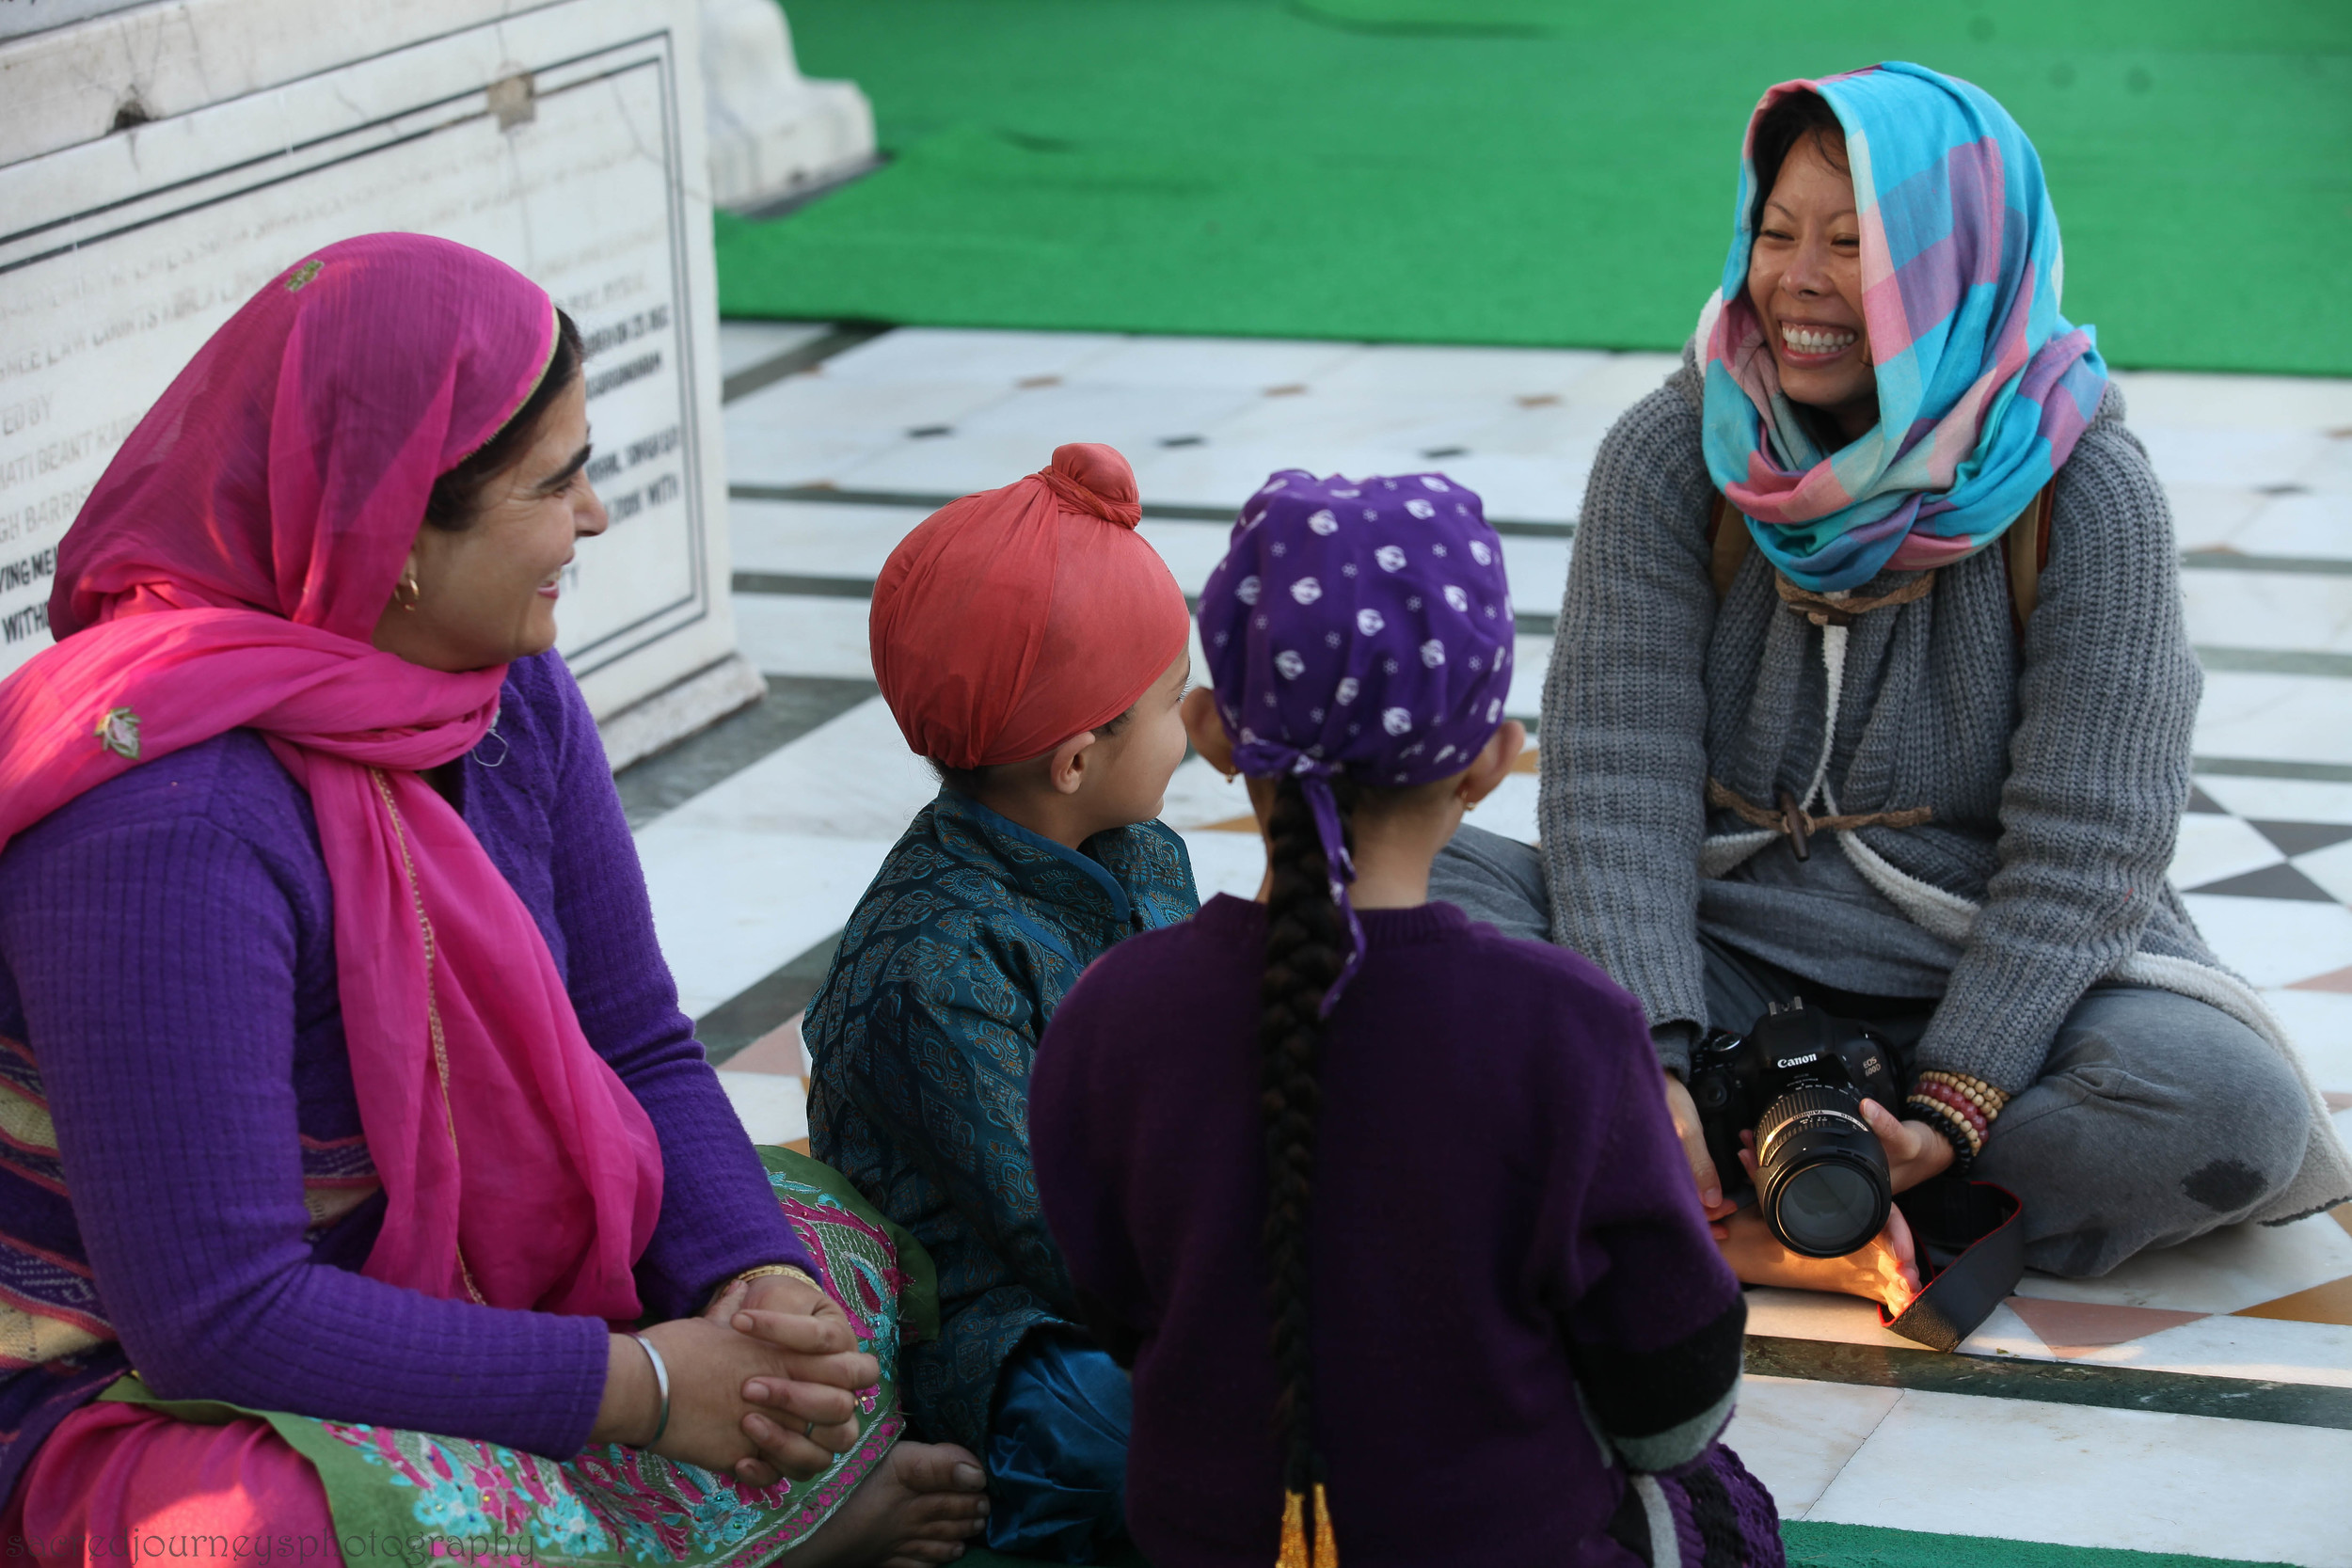 Rita from Hong Kong, having a great time with a family on the Parkarma of the Golden Temple in Amritsar India ~ Sacred Journeys  INDIA encourages positive cultural exchanges